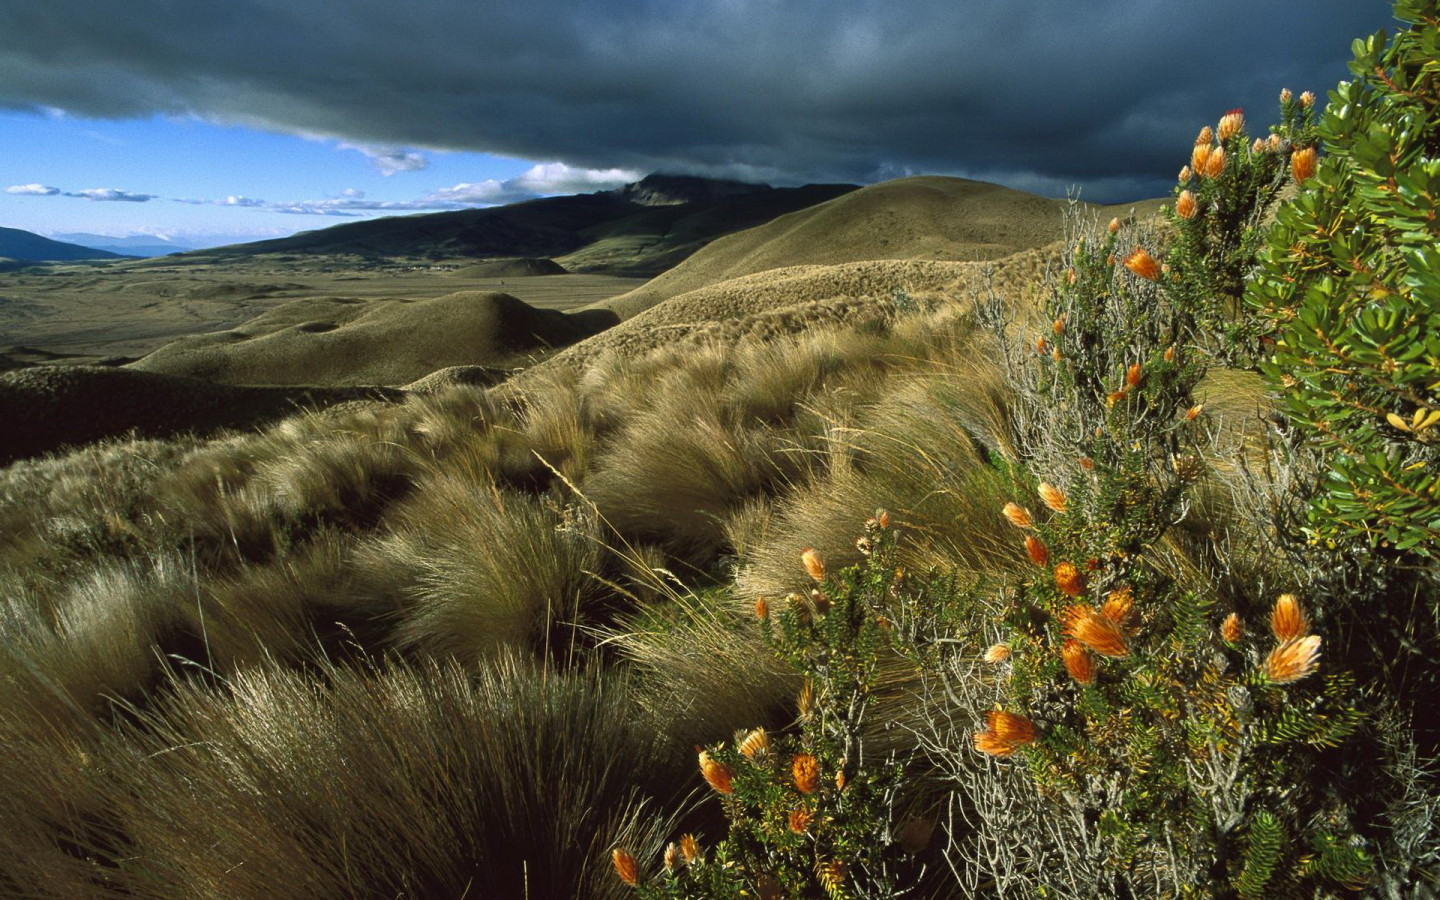 Amazing Ecuador Wallpaper 6080